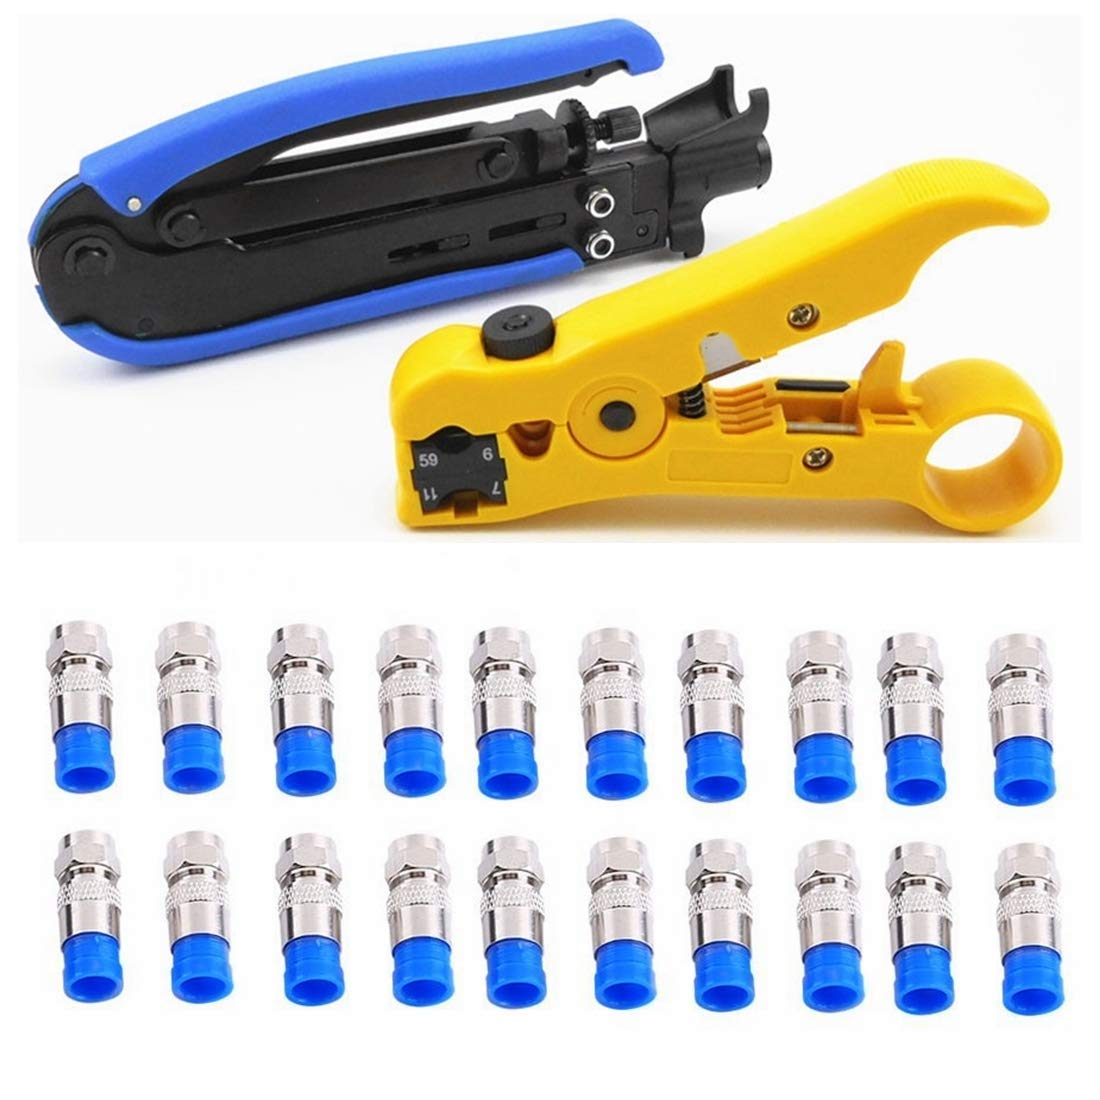 Yankok Coaxial Cable Crimper Wire Stripper Cutter with 20 Pcs F Connector Kit For RG59 RG11 RG7 RG6 75-5 75-7 4P 6P 8P UTP STP Round & Flat Network Cable 3.2-9.0mm Multi-transmission Cable